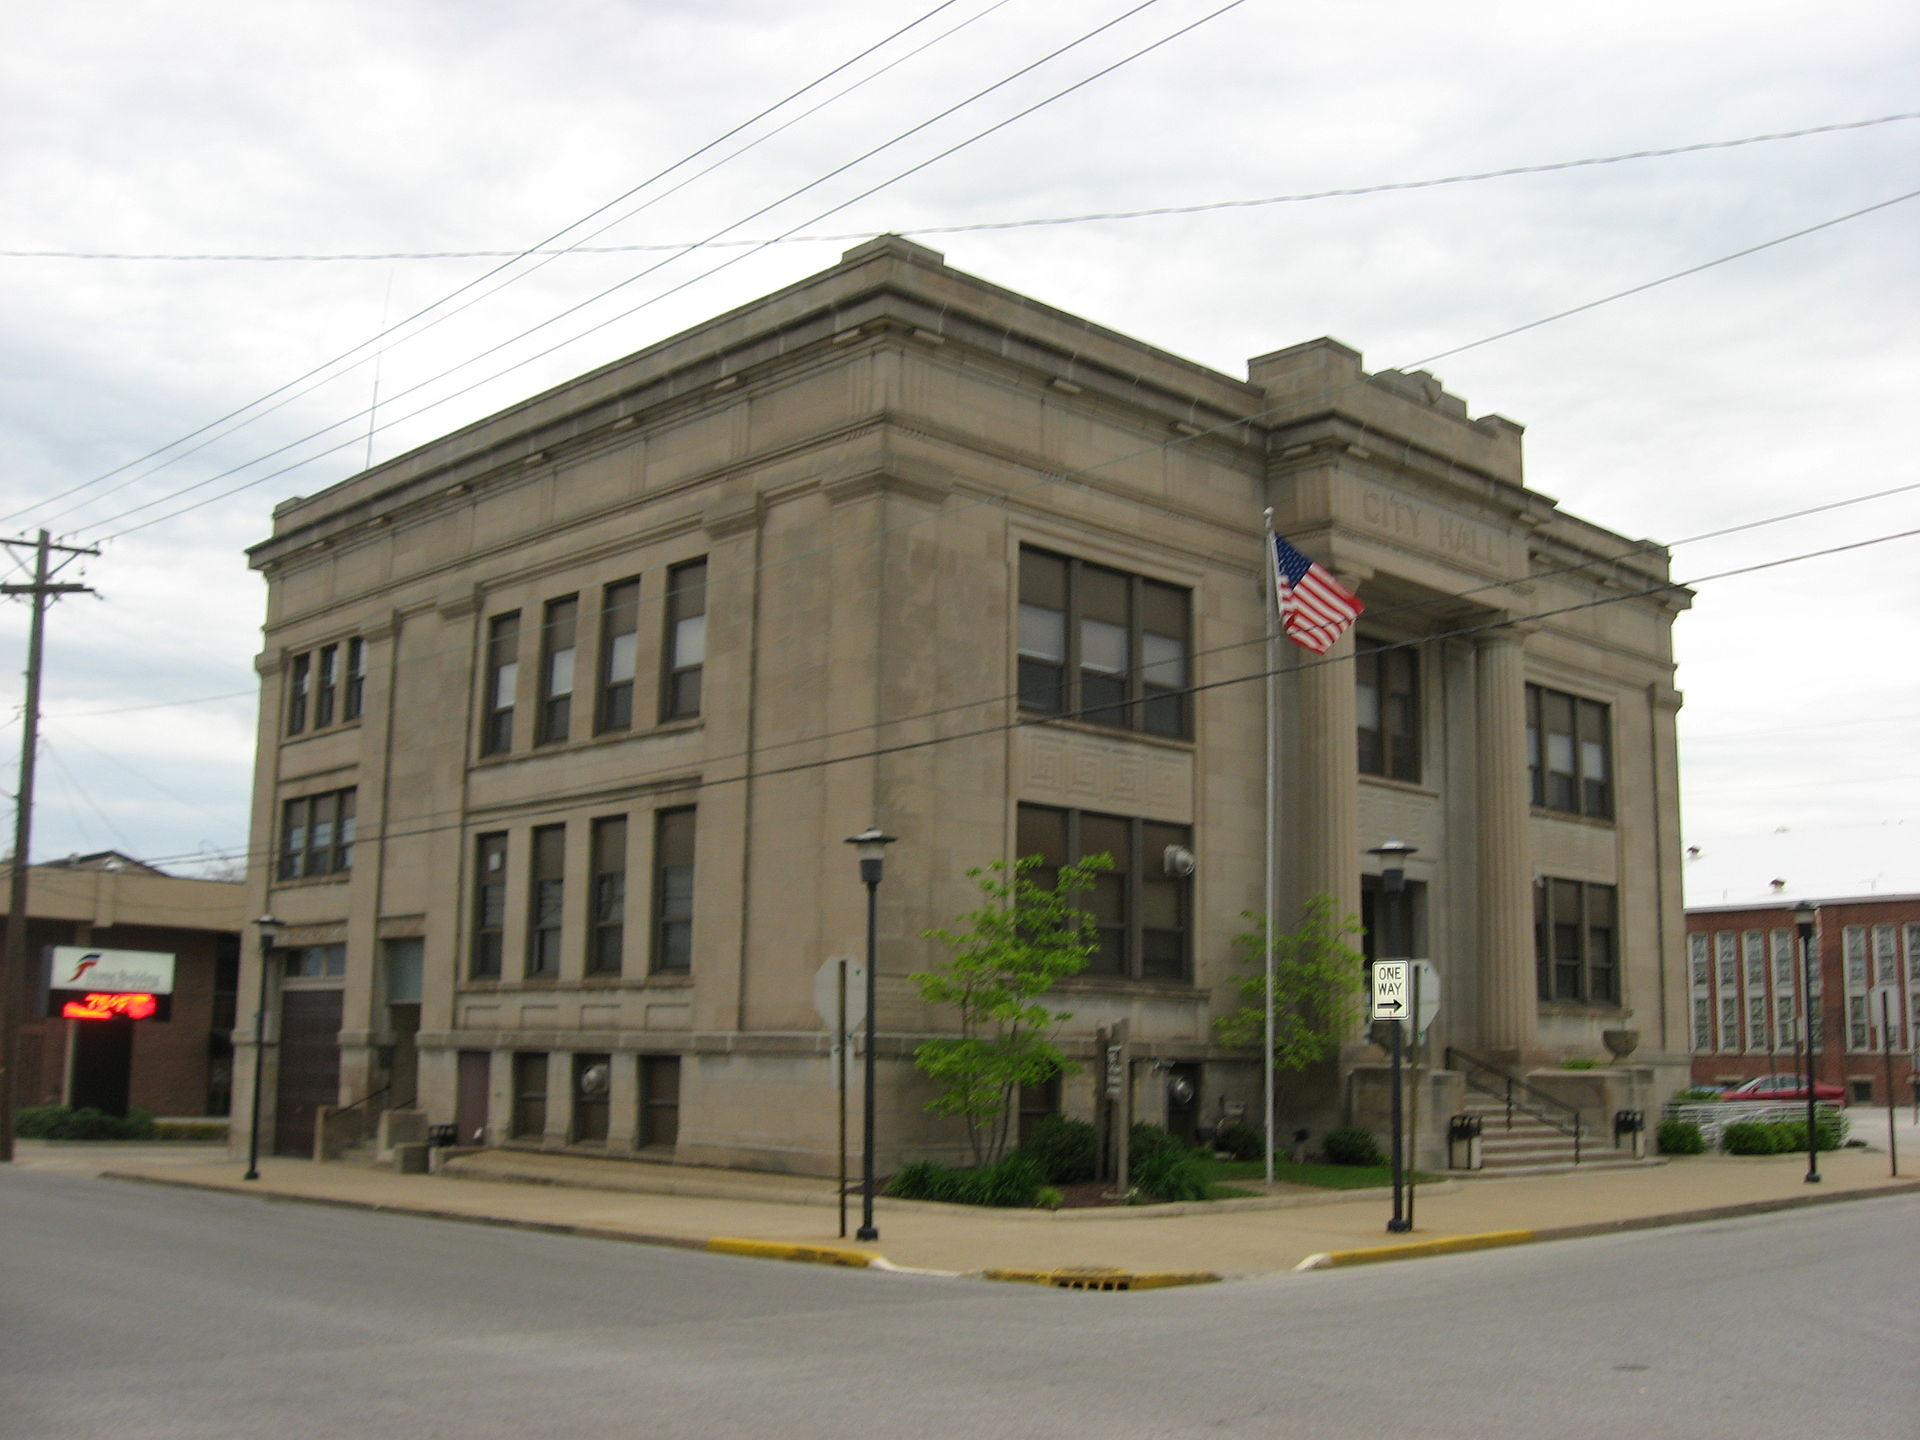 City_Hall_in_Washington,_Indiana